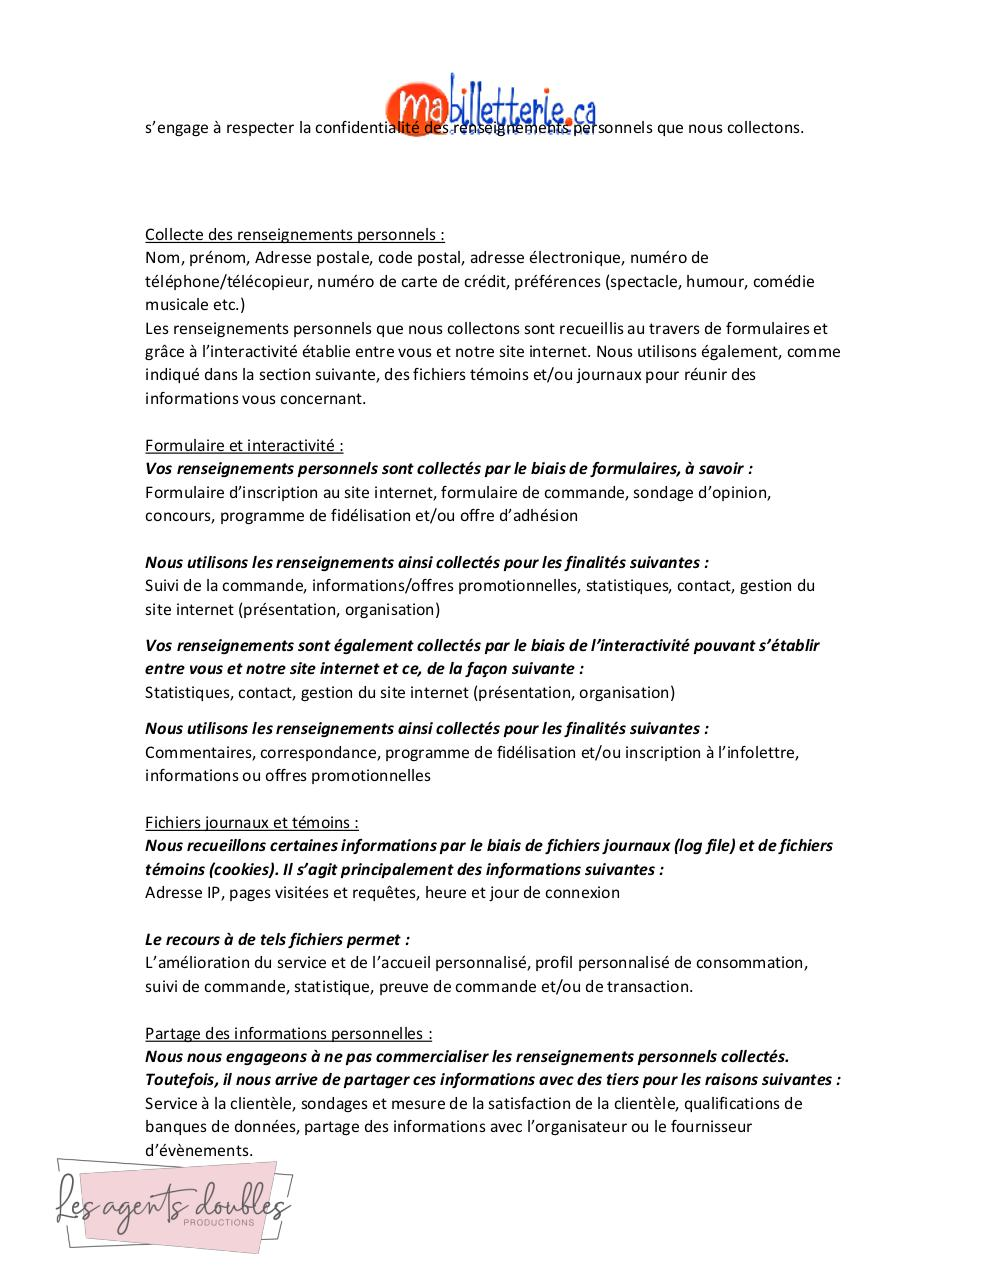 Aperçu du document Condition_de_vente_mabilletterie_14052019.pdf - page 4/5